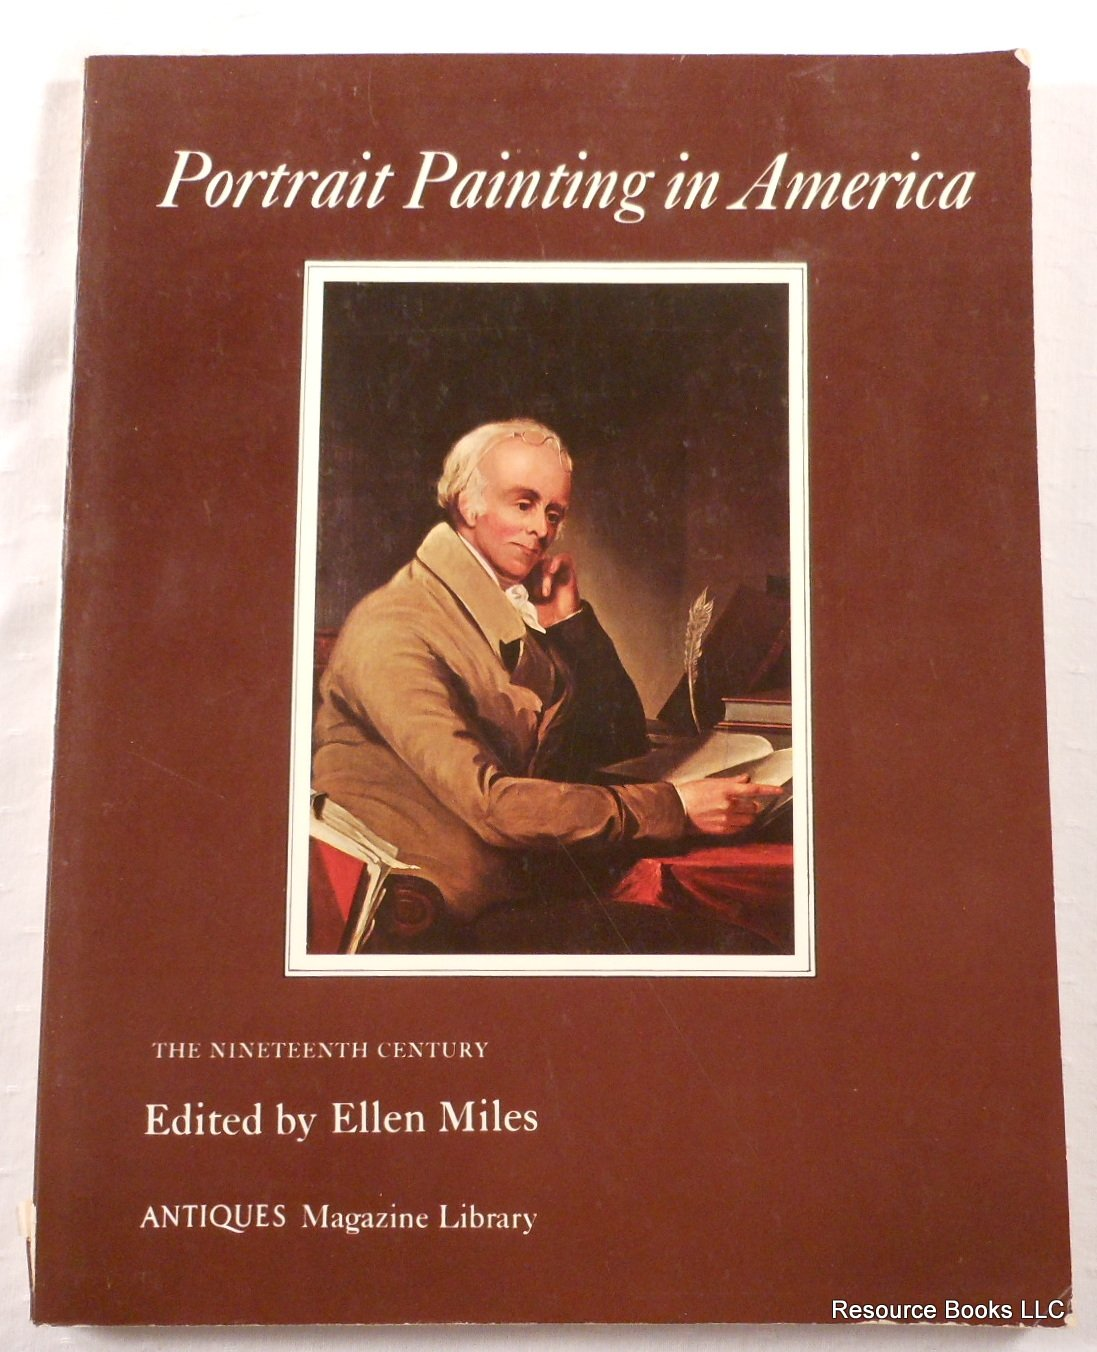 Portrait painting in America: The nineteenth century (Antiques magazine library)